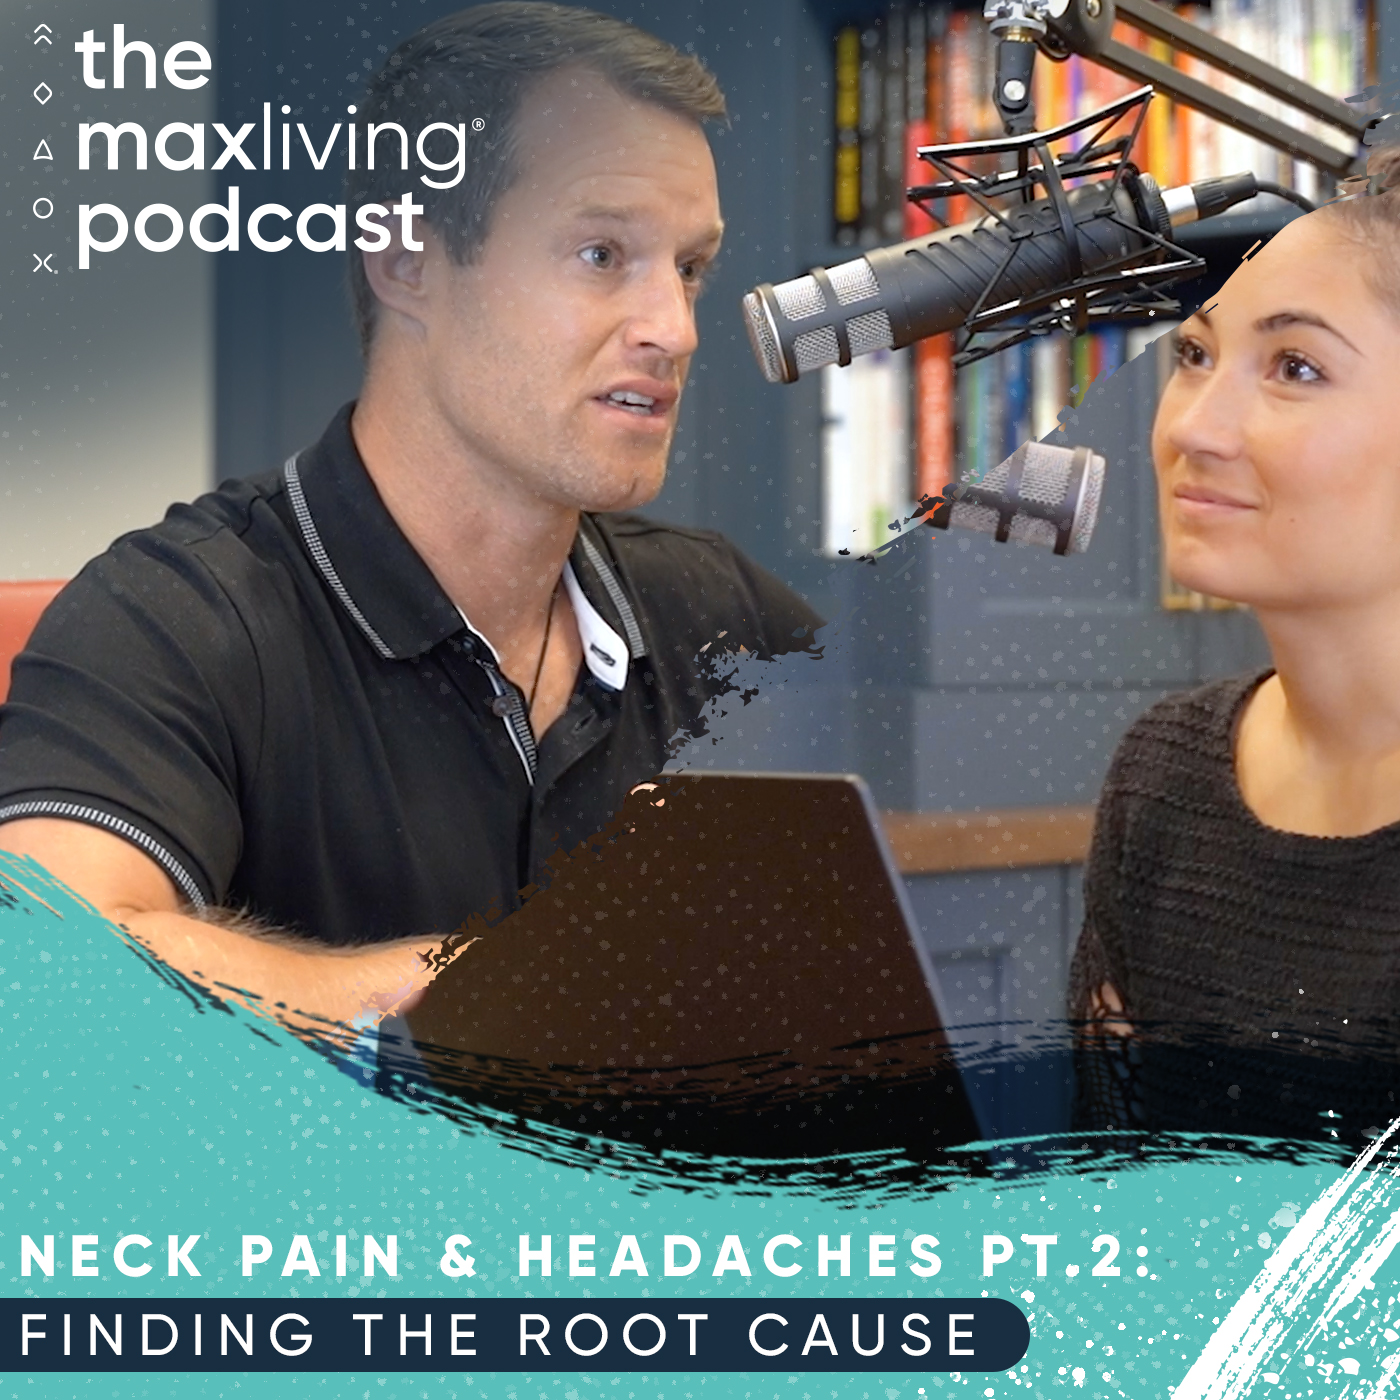 Neck Pain and Headaches: Finding the Root Cause Part 2